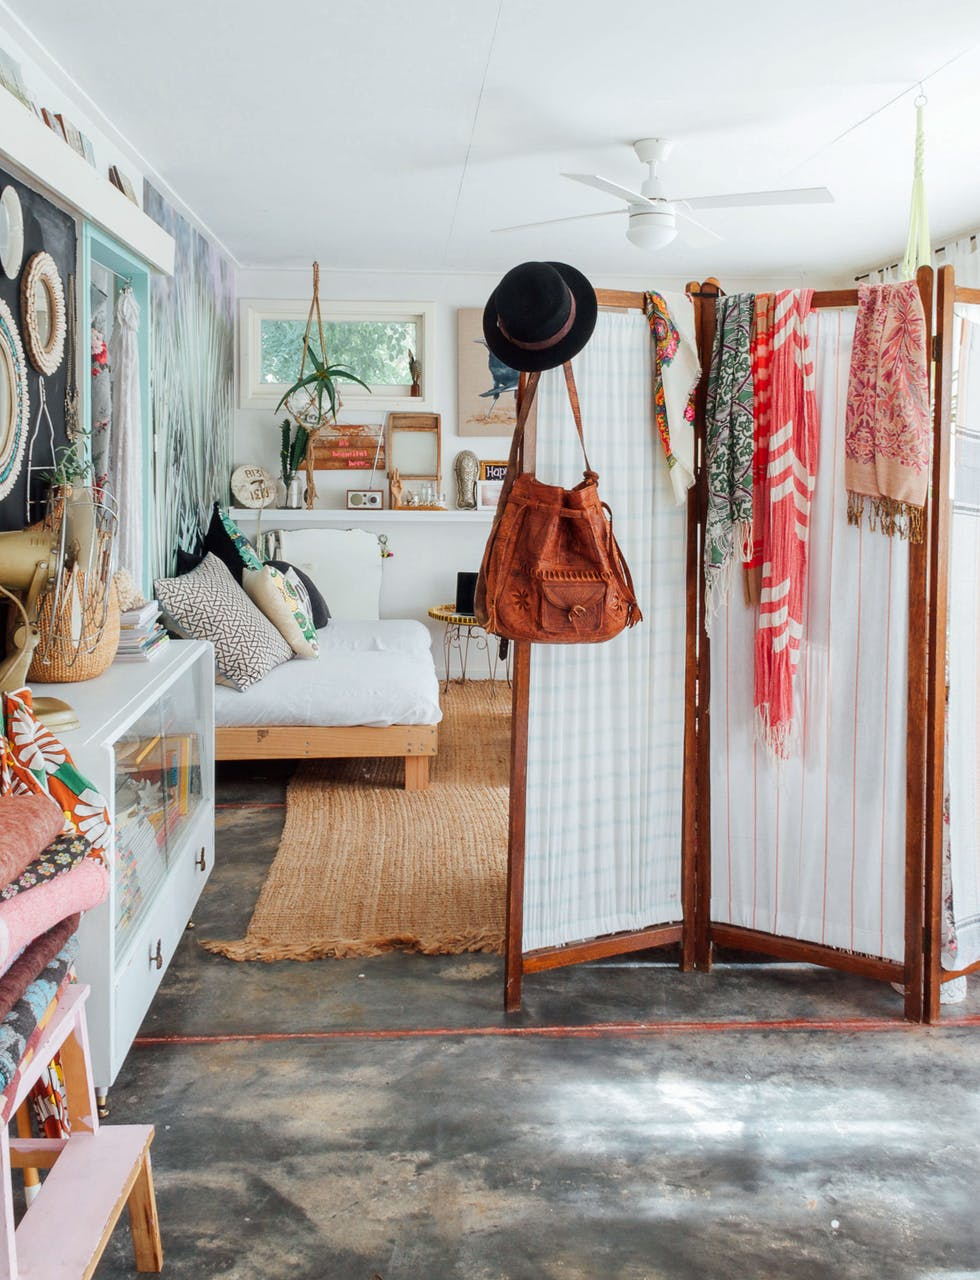 bohemian wander inspired home filled with travel mementos and a room divider screen